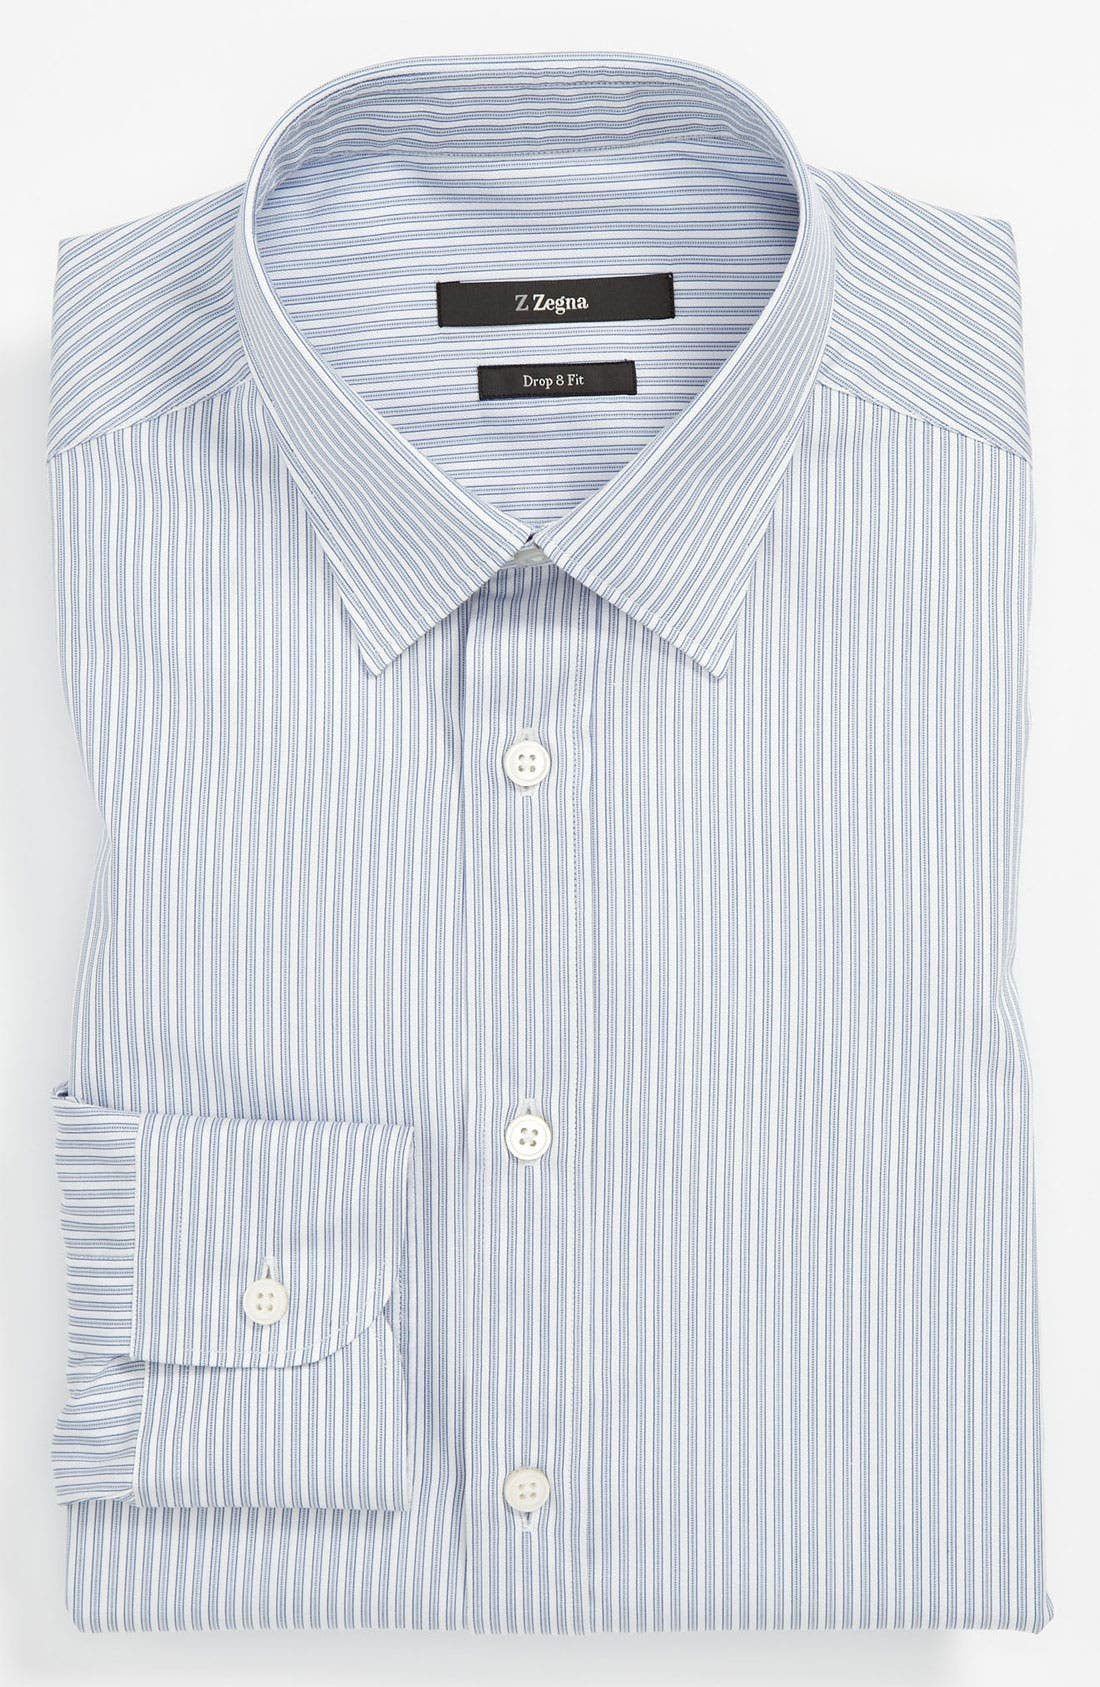 Alternate Image 1 Selected - Z Zegna Trim Fit Dress Shirt